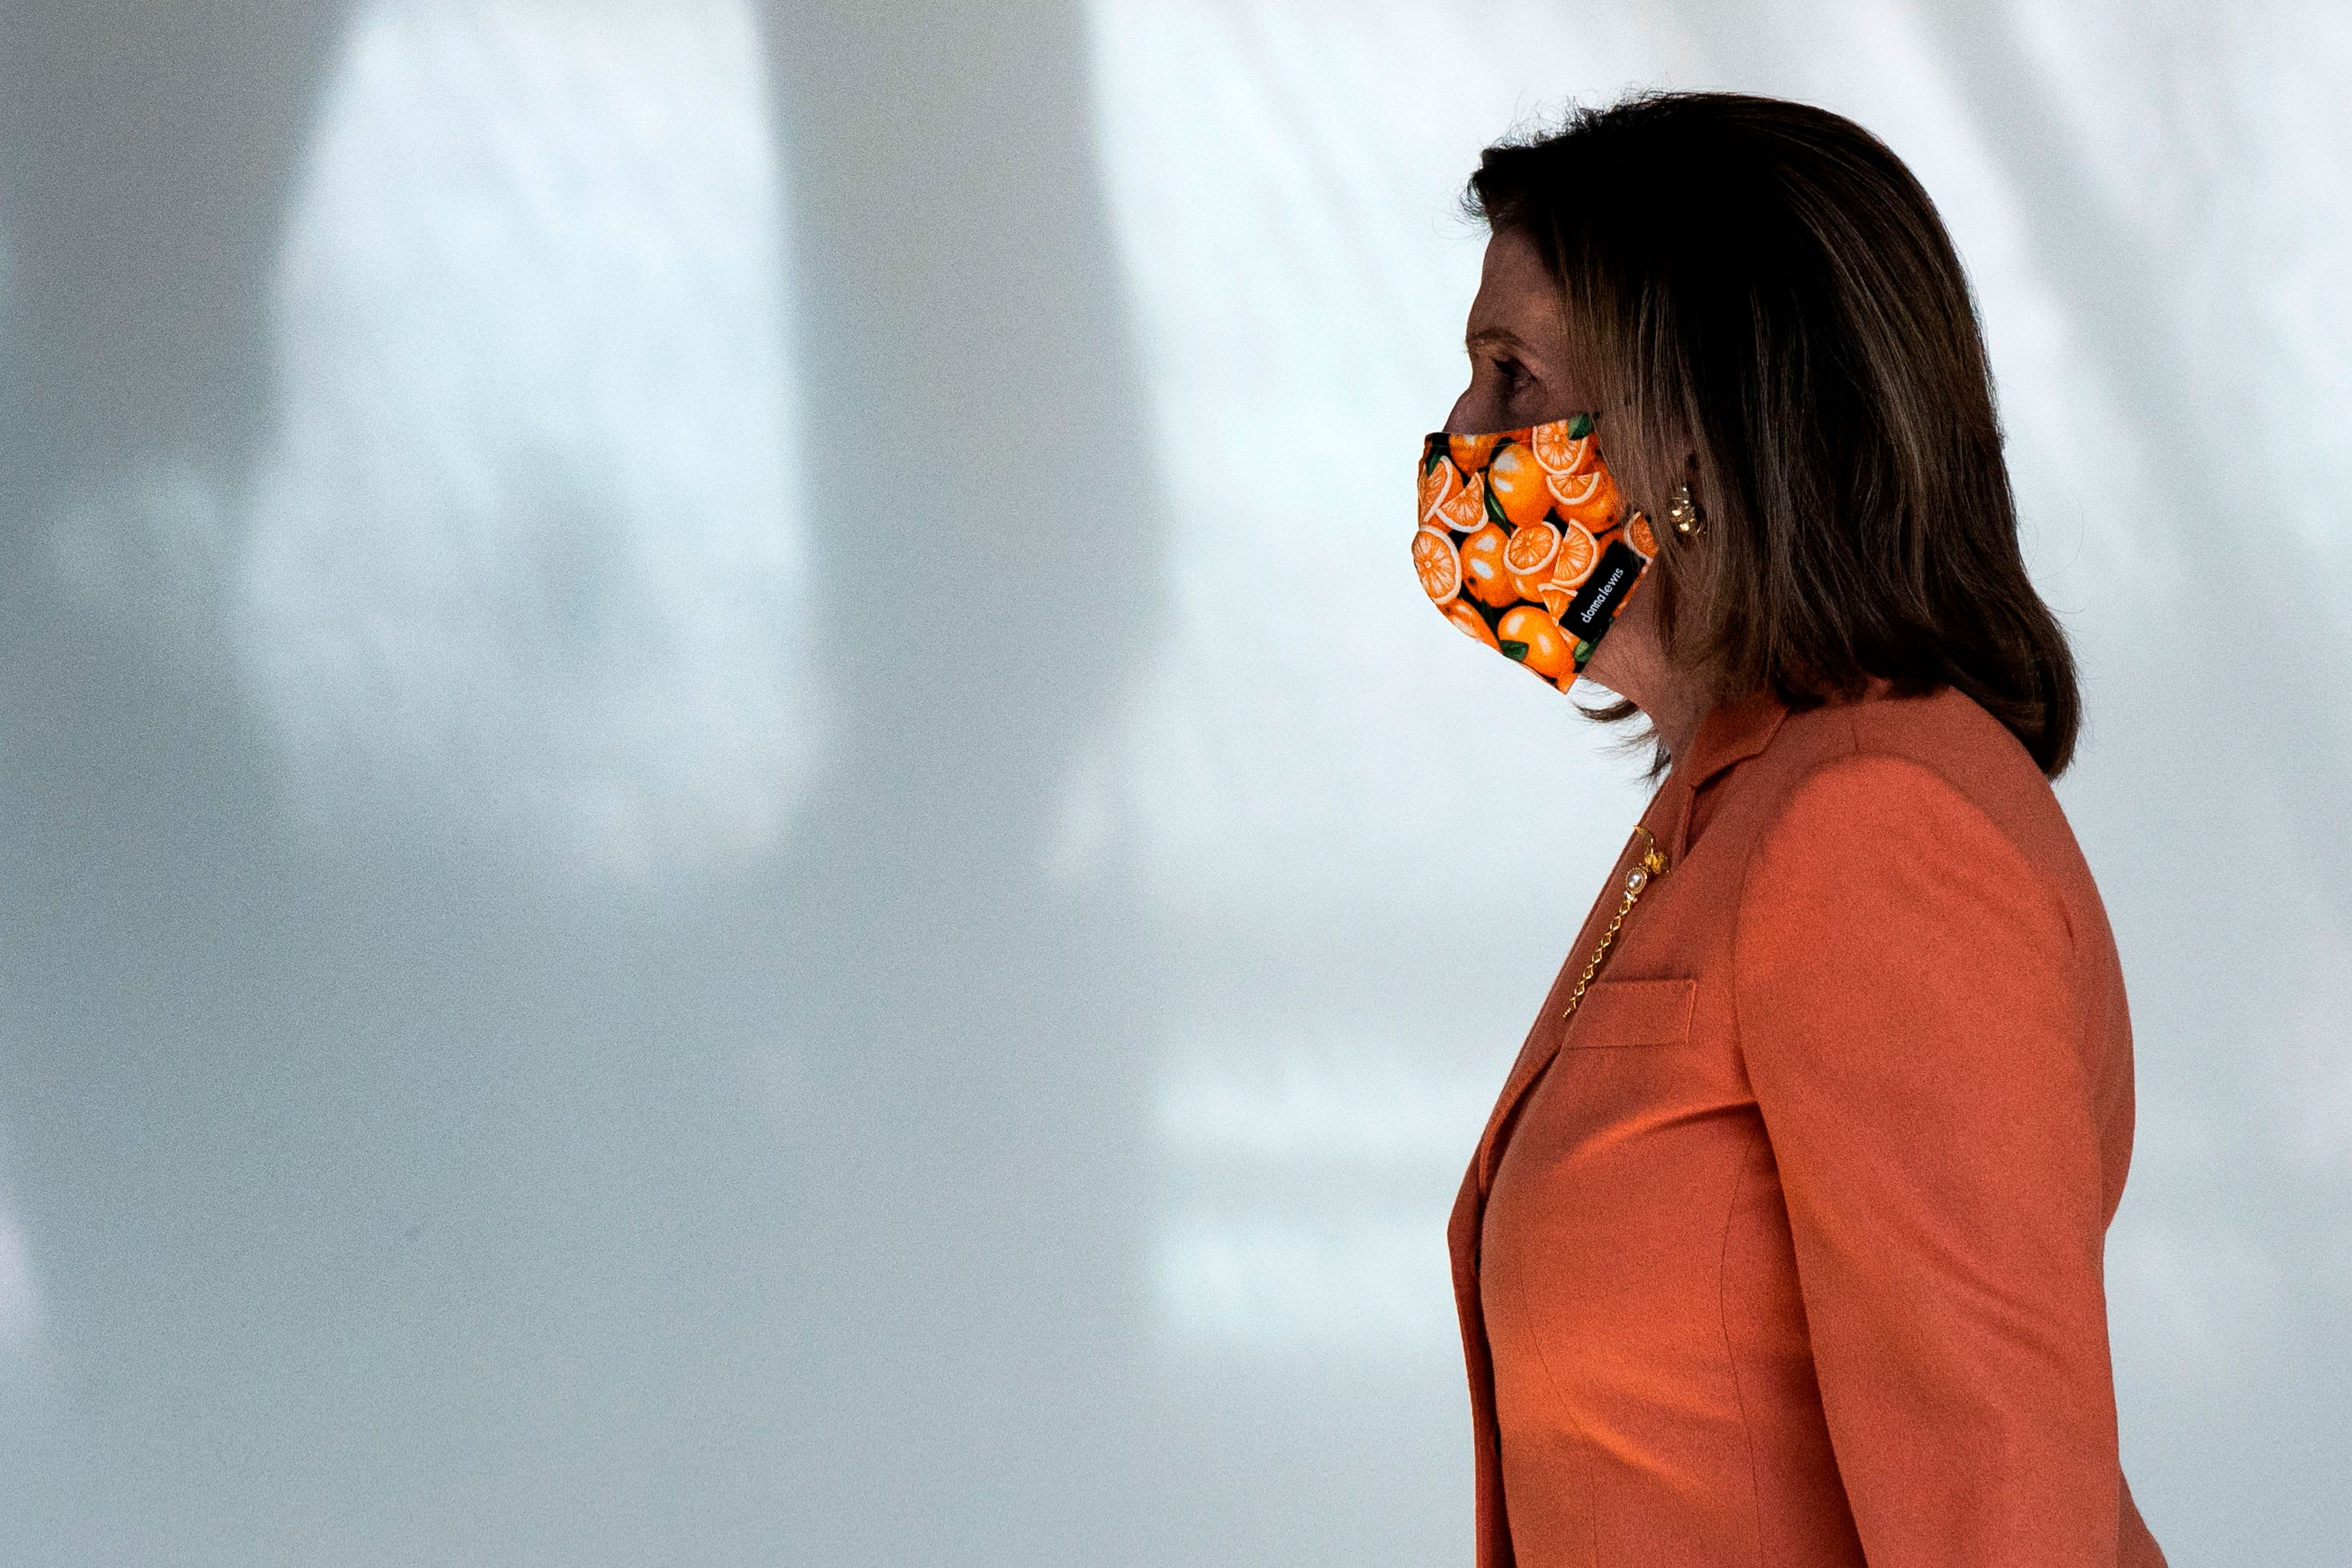 Pelosi dismisses Trump coronavirus stimulus offer